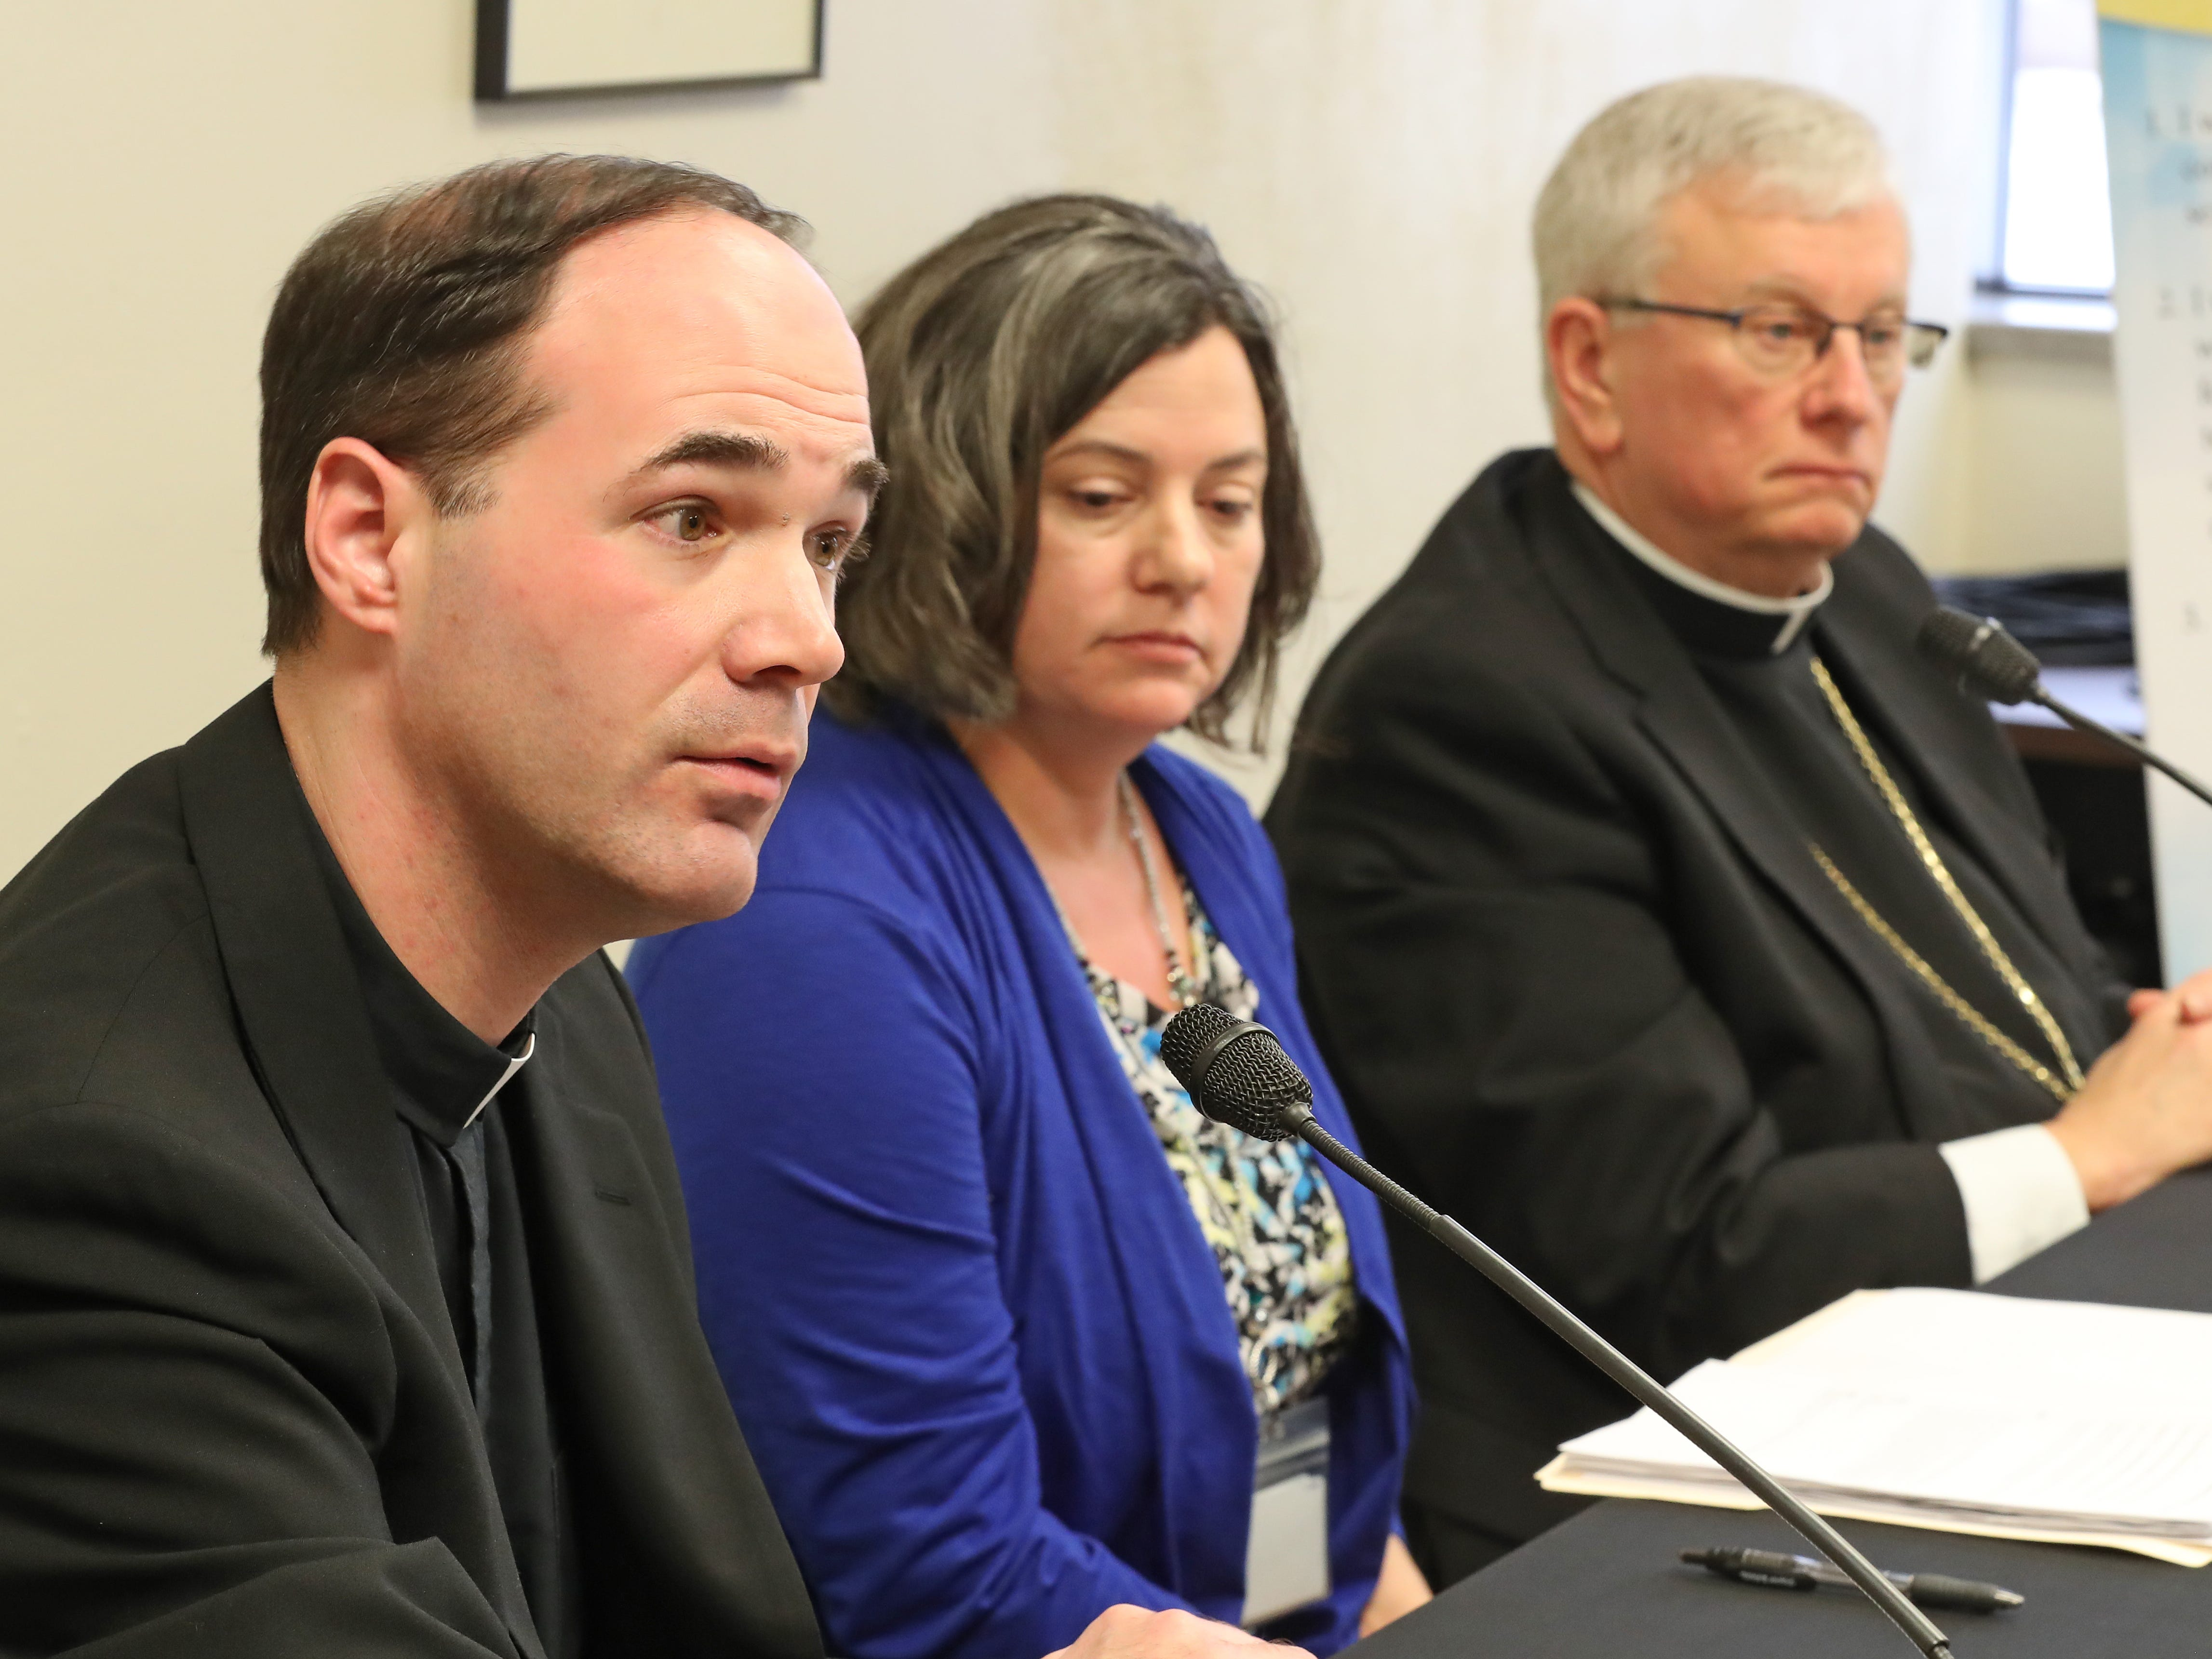 Rev. John Girotti, vicar for Canonical Services for the Catholic Diocese of Green Bay, discusses the release of the names on Thursday of 46 priests confirmed to hve abused minors at the Diocese of Green Bay offices in Allouez. At right are Bishop David L.Ricken and diocese Chancellor Tammy Basten.